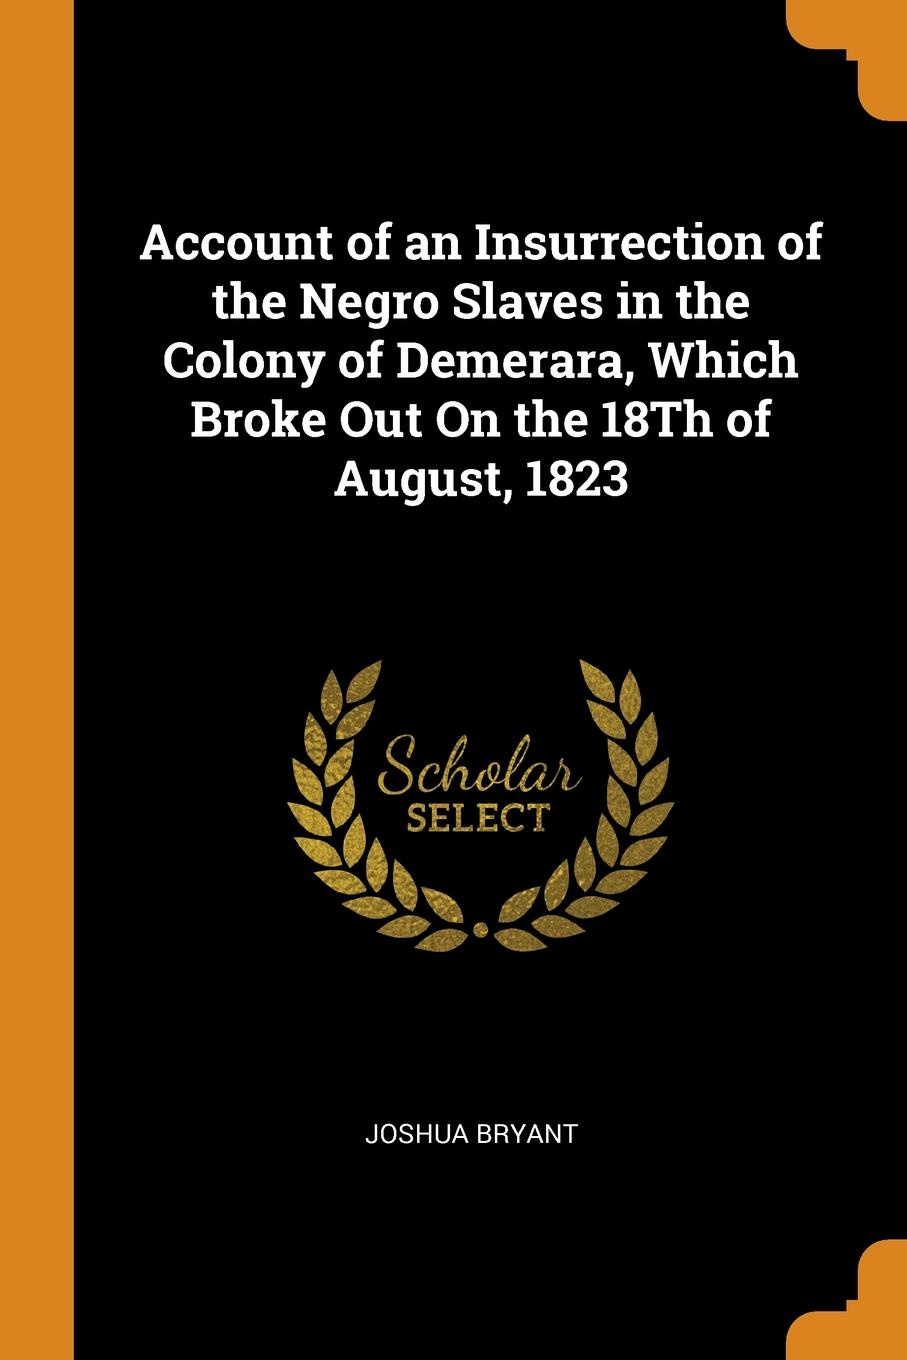 Account of an Insurrection of the Negro Slaves in the Colony of Demerara, Which Broke Out On the 18Th of August, 1823